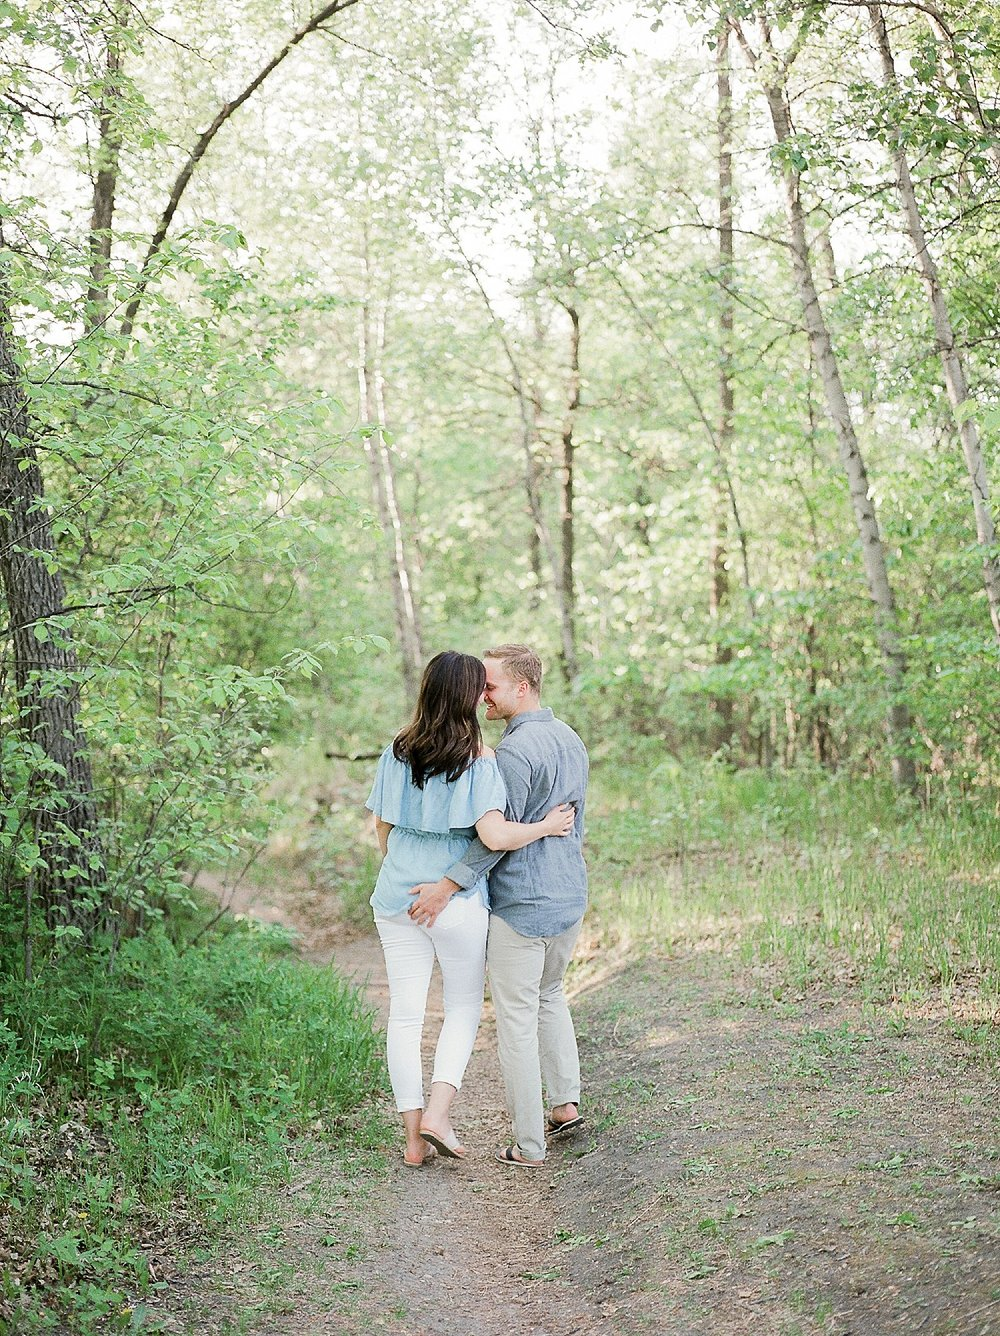 fun engagement photo poses, engagement session outfit ideas for summer, engagement photos at a park, kings park winnipeg, denim over the shoulder top,